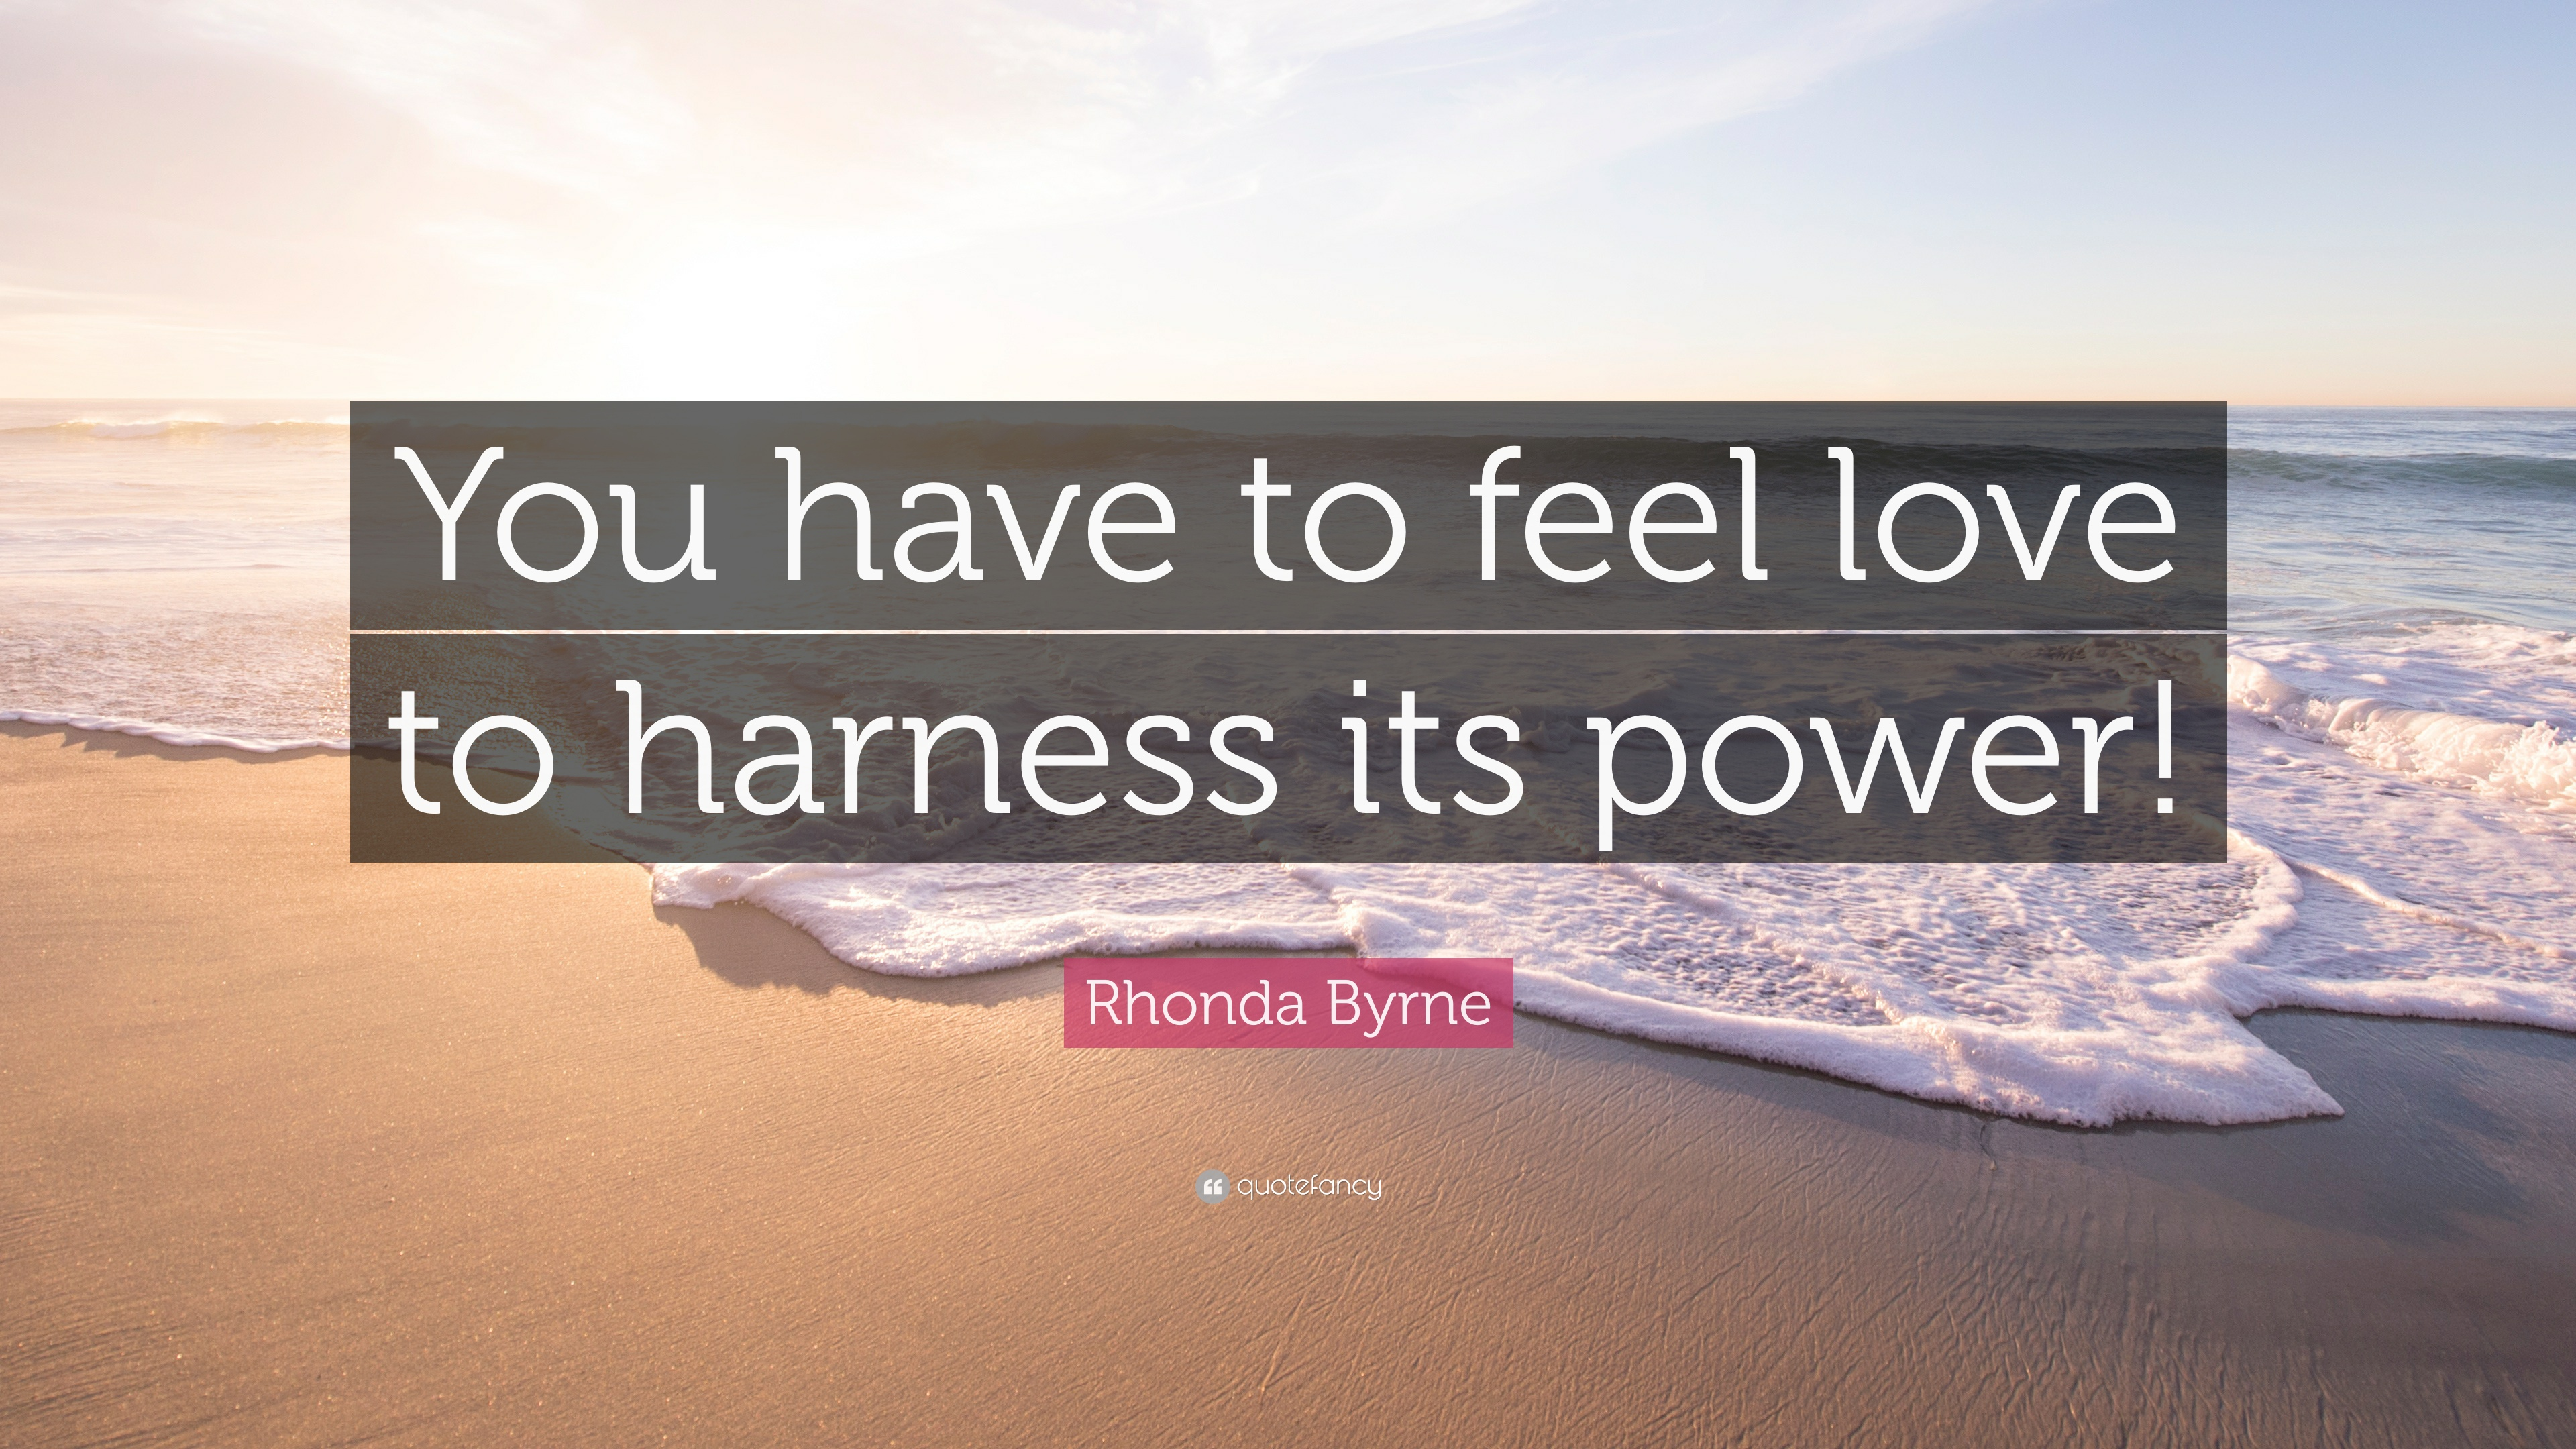 Law Of Attraction Quotes: U201cYou Have To Feel Love To Harness Its Power!